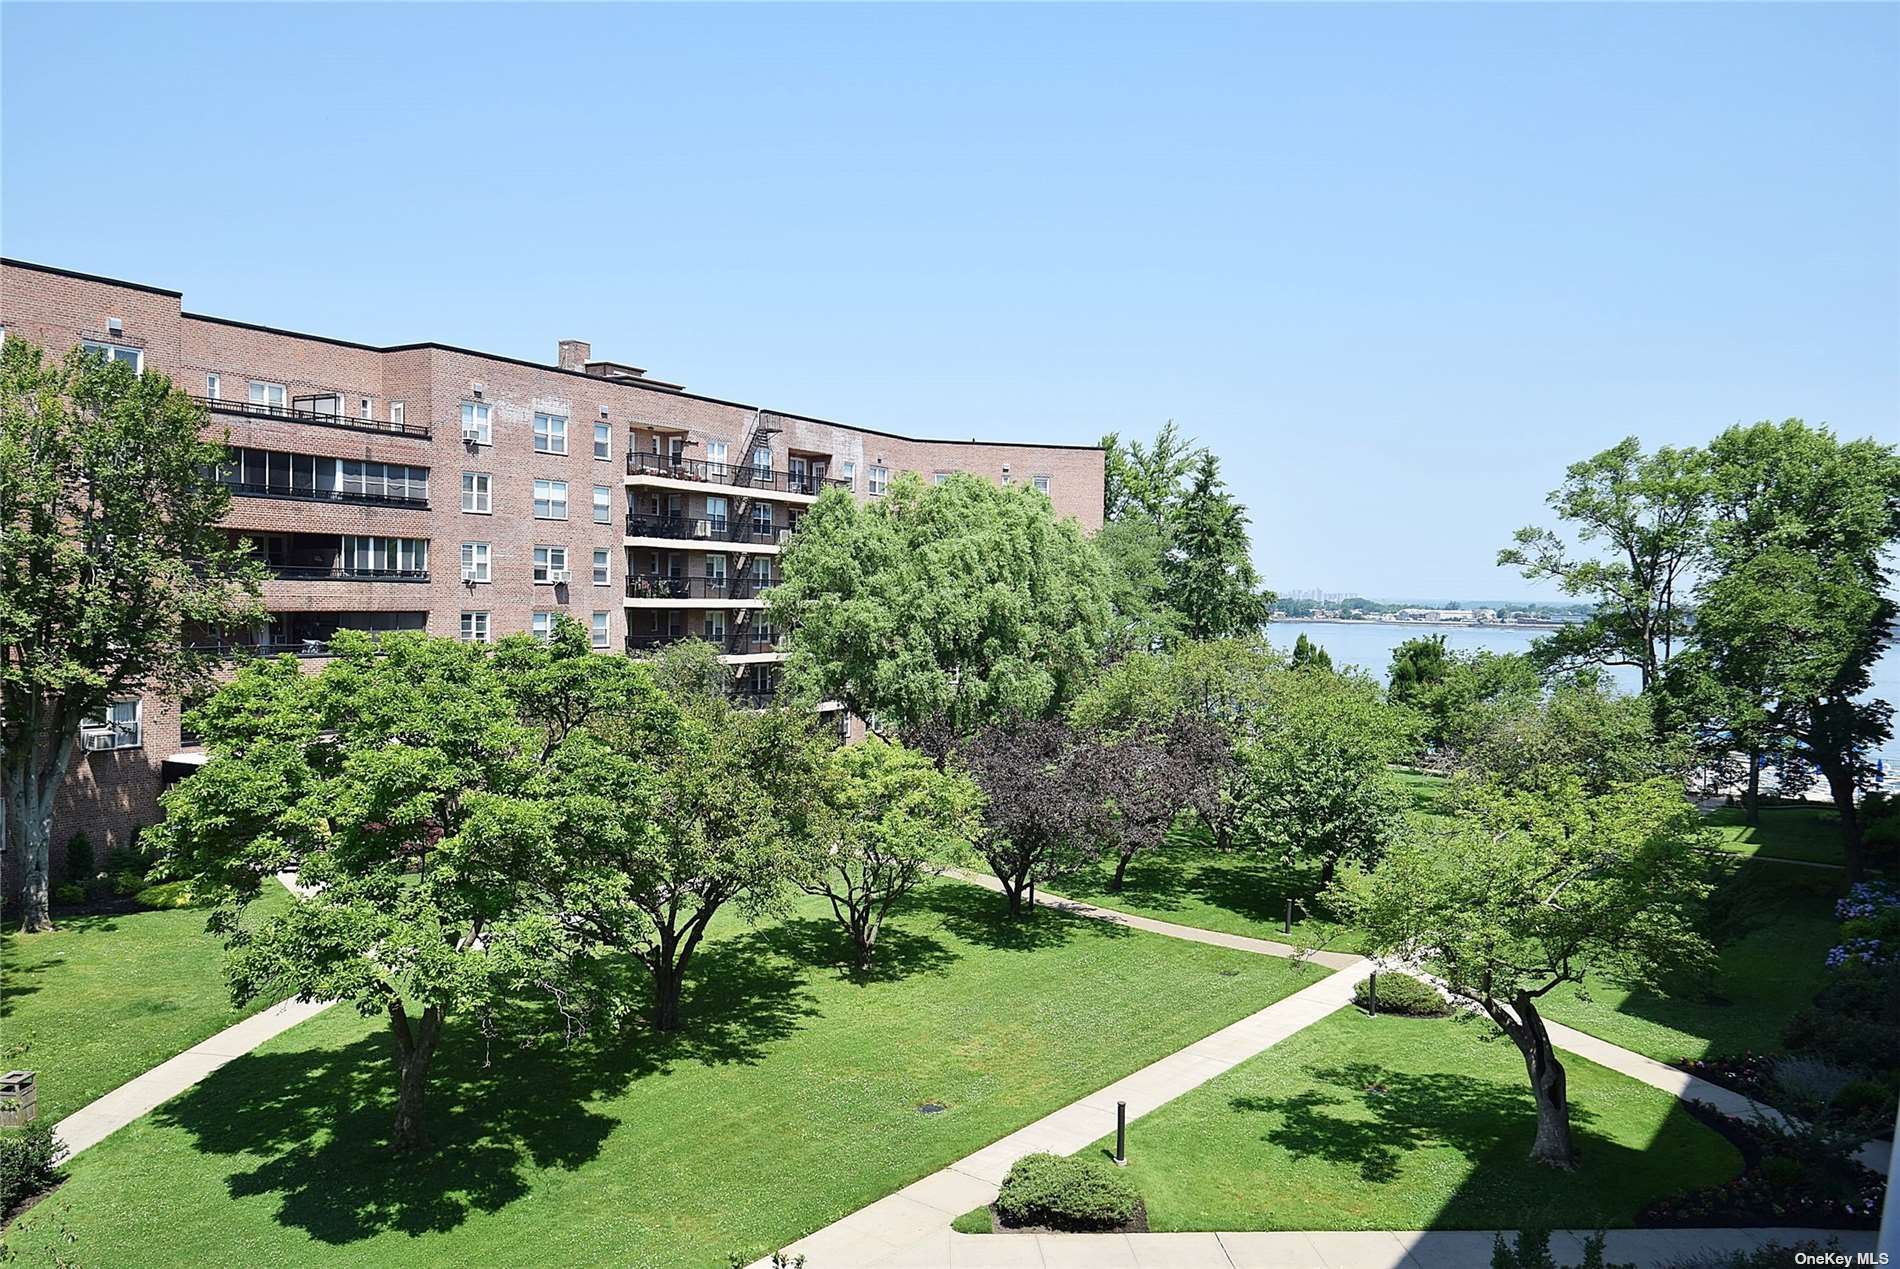 Make this Spectacular Waterview 1300 square foot 1 bedroom your own.  Open Concept. Huge walk in closets. Luxury  Hi Rise Coop featuring 24 hour Doorman, Olympic size outdoor Pool Overlooking Bridge and Long Island Sound. Luxury living.